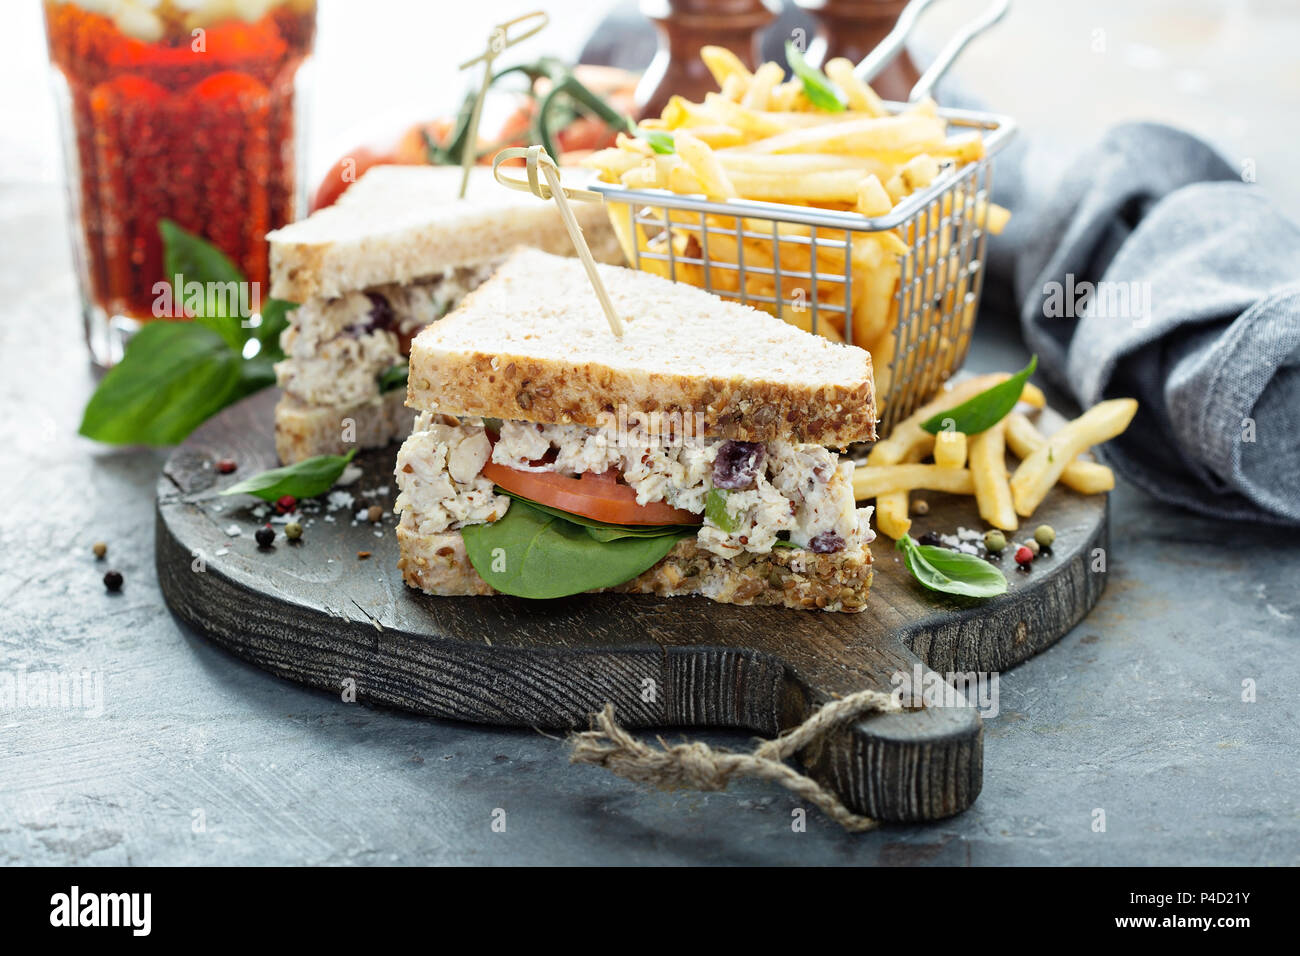 Chicken salad sandwich with spinach and tomato - Stock Image